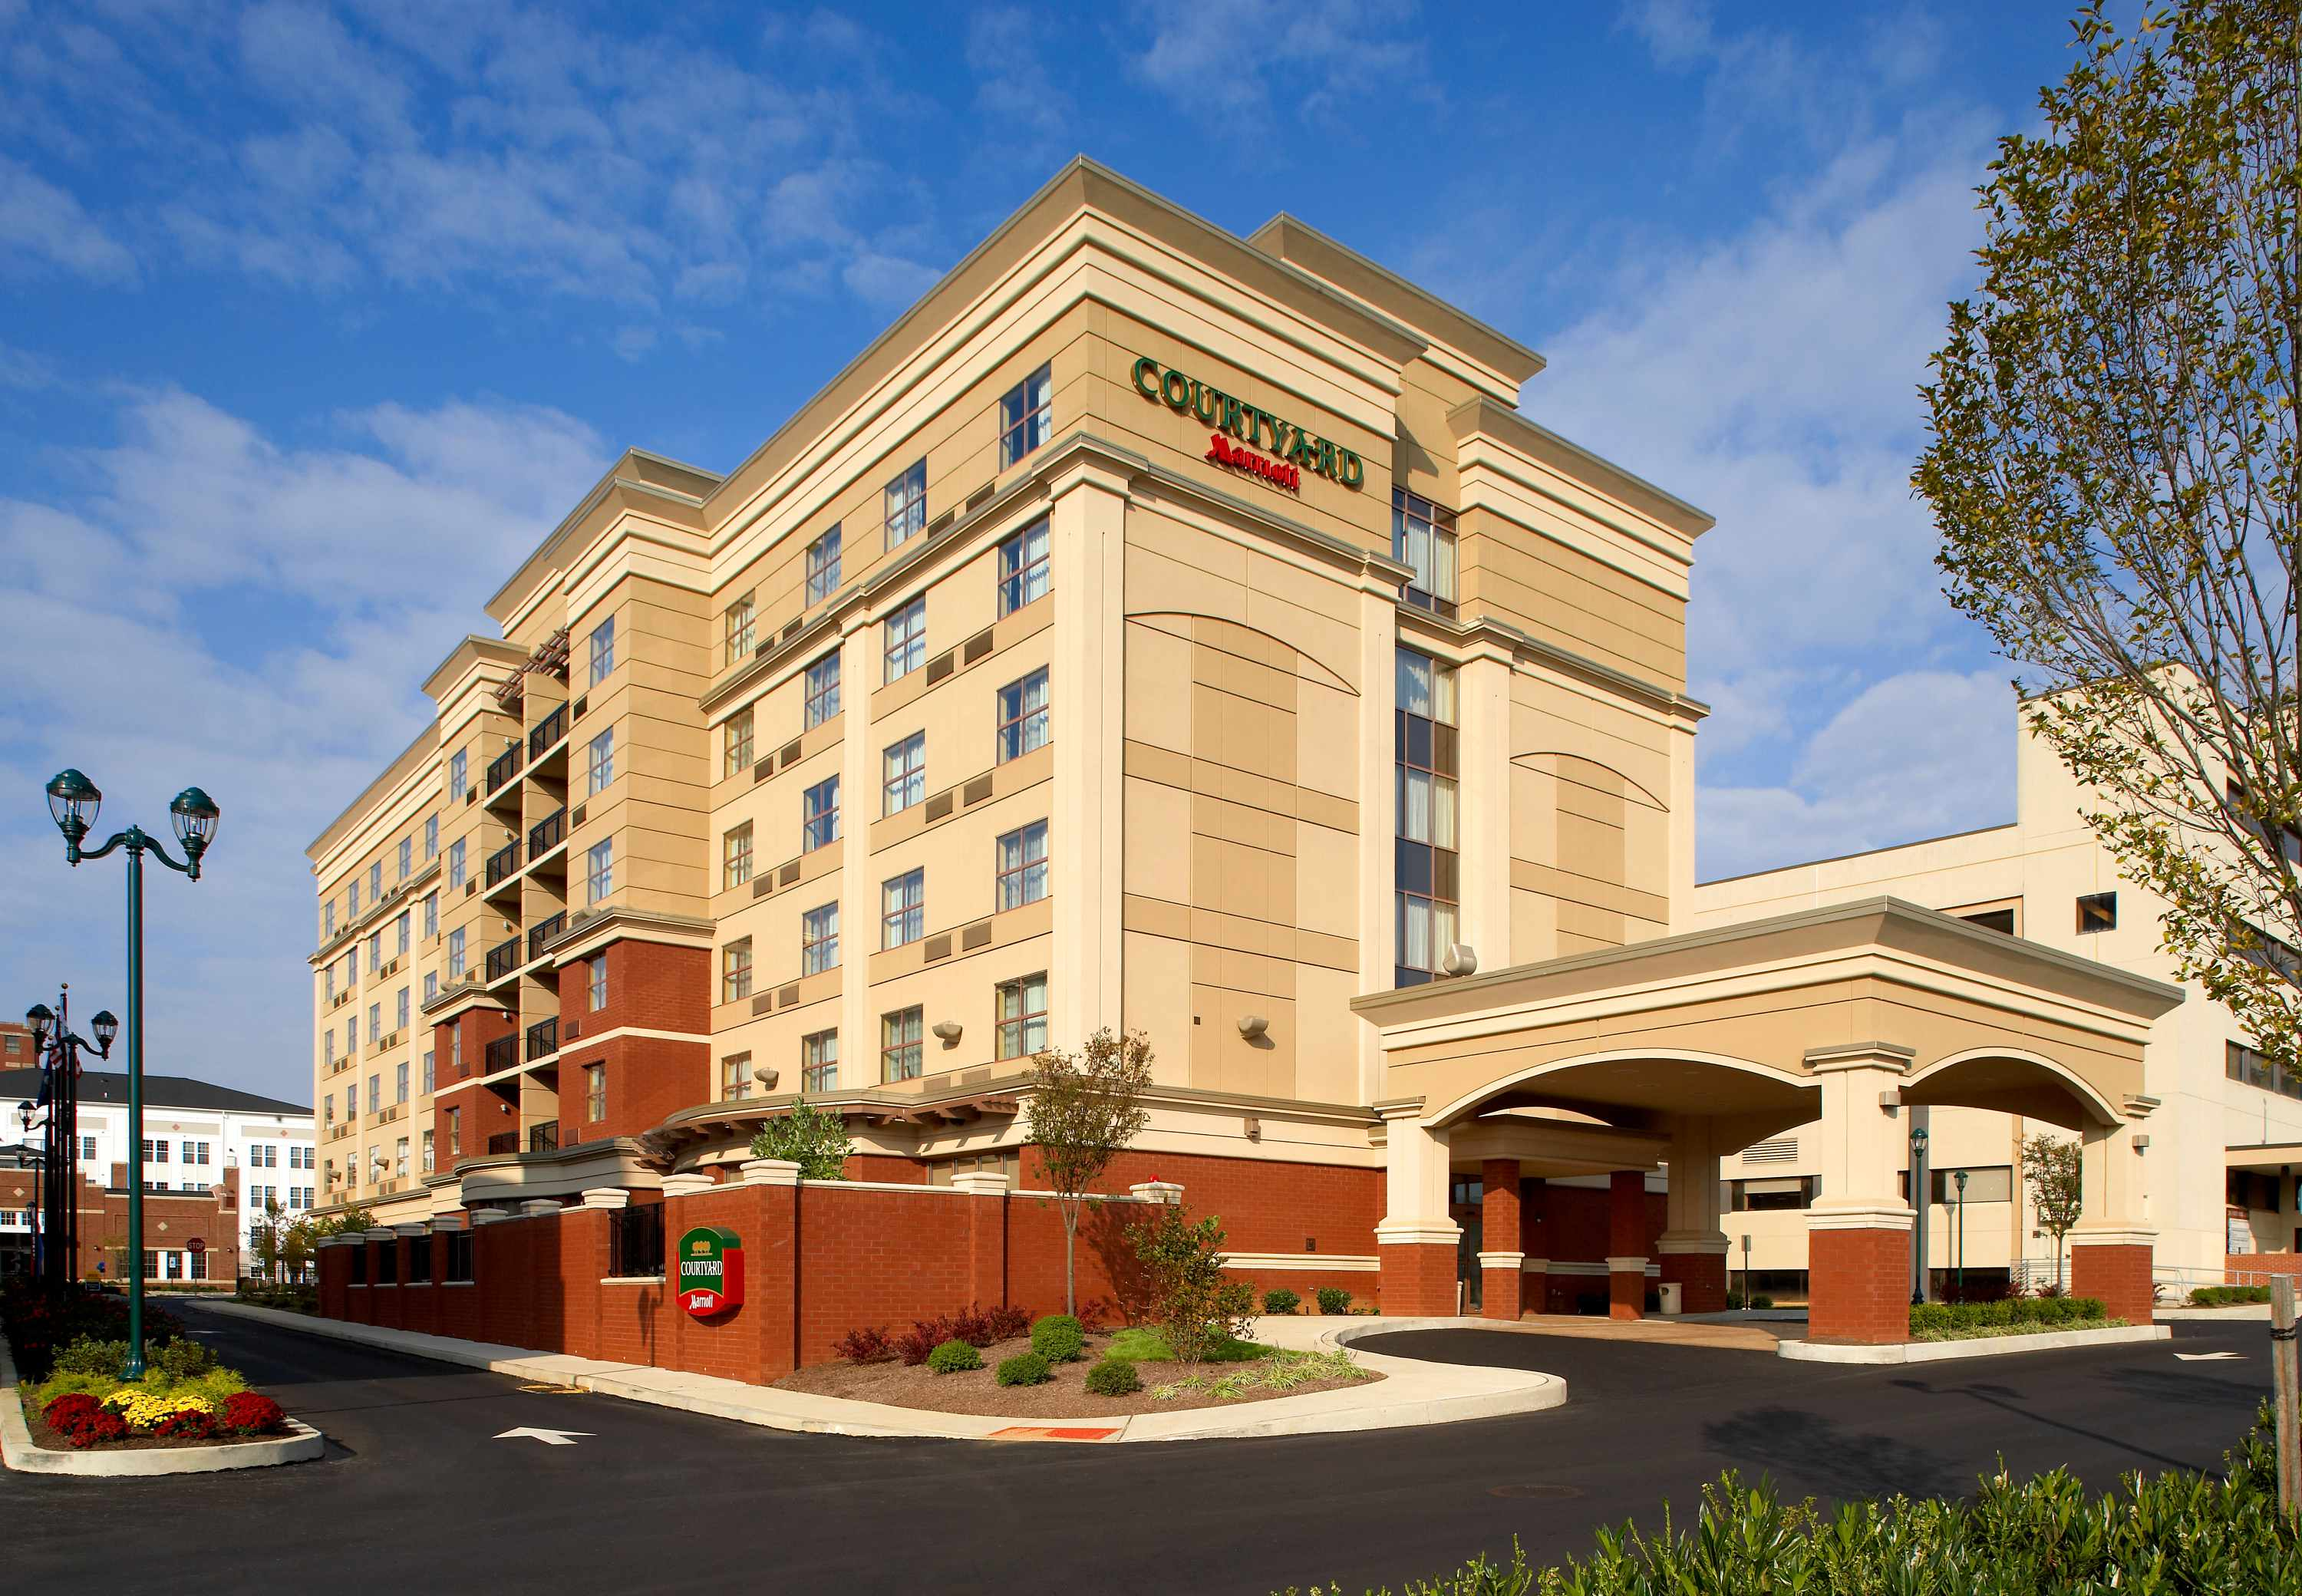 Official site of Holiday Inn Express & Suites Reading. Stay Smart, rest, and recharge at Holiday Inn Express - Best Price Guarantee.